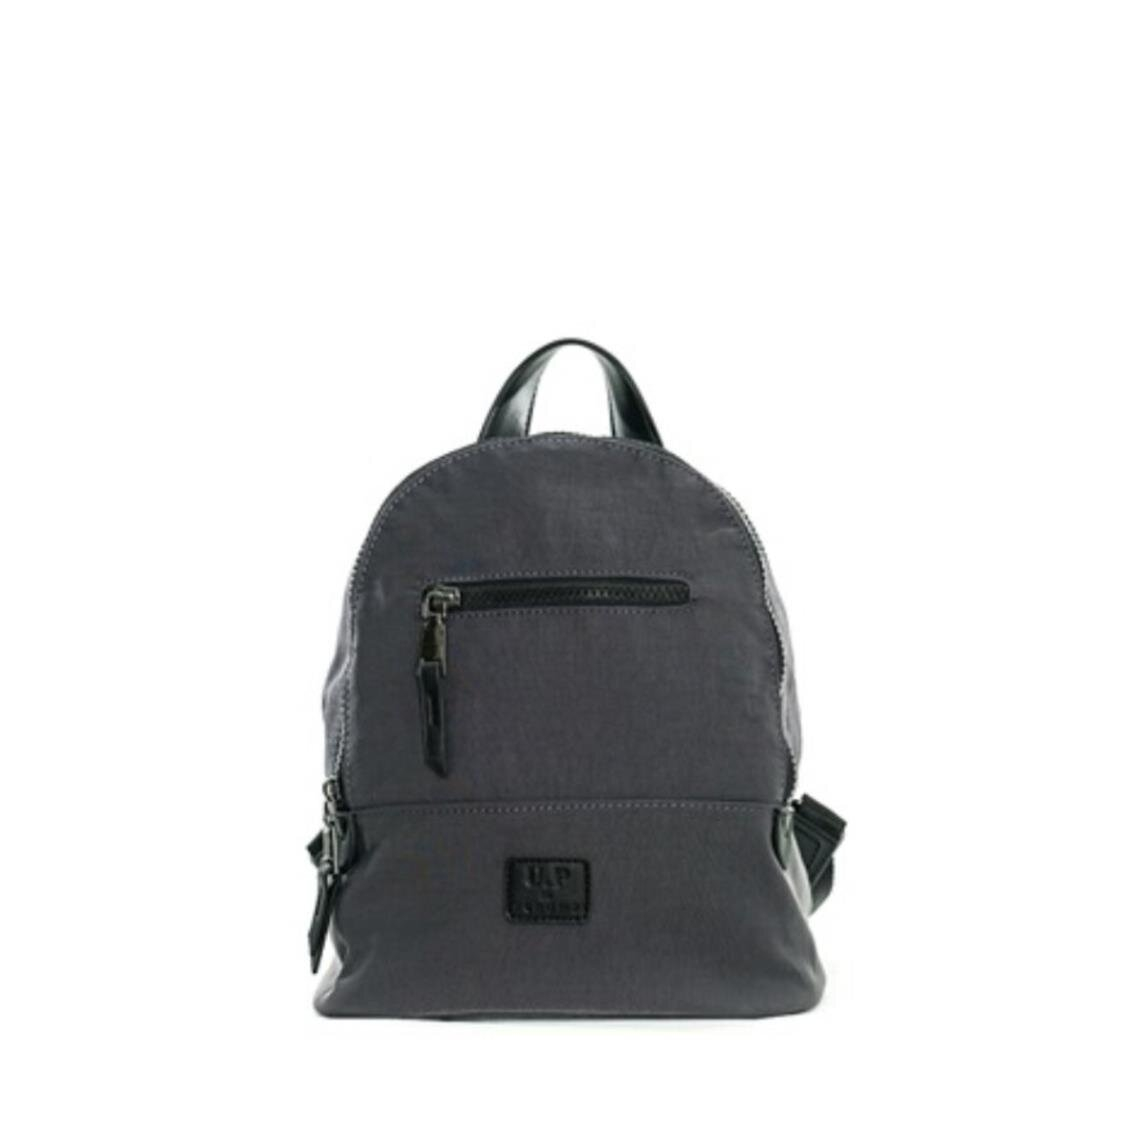 Renoma Medium Backpack Dark Grey